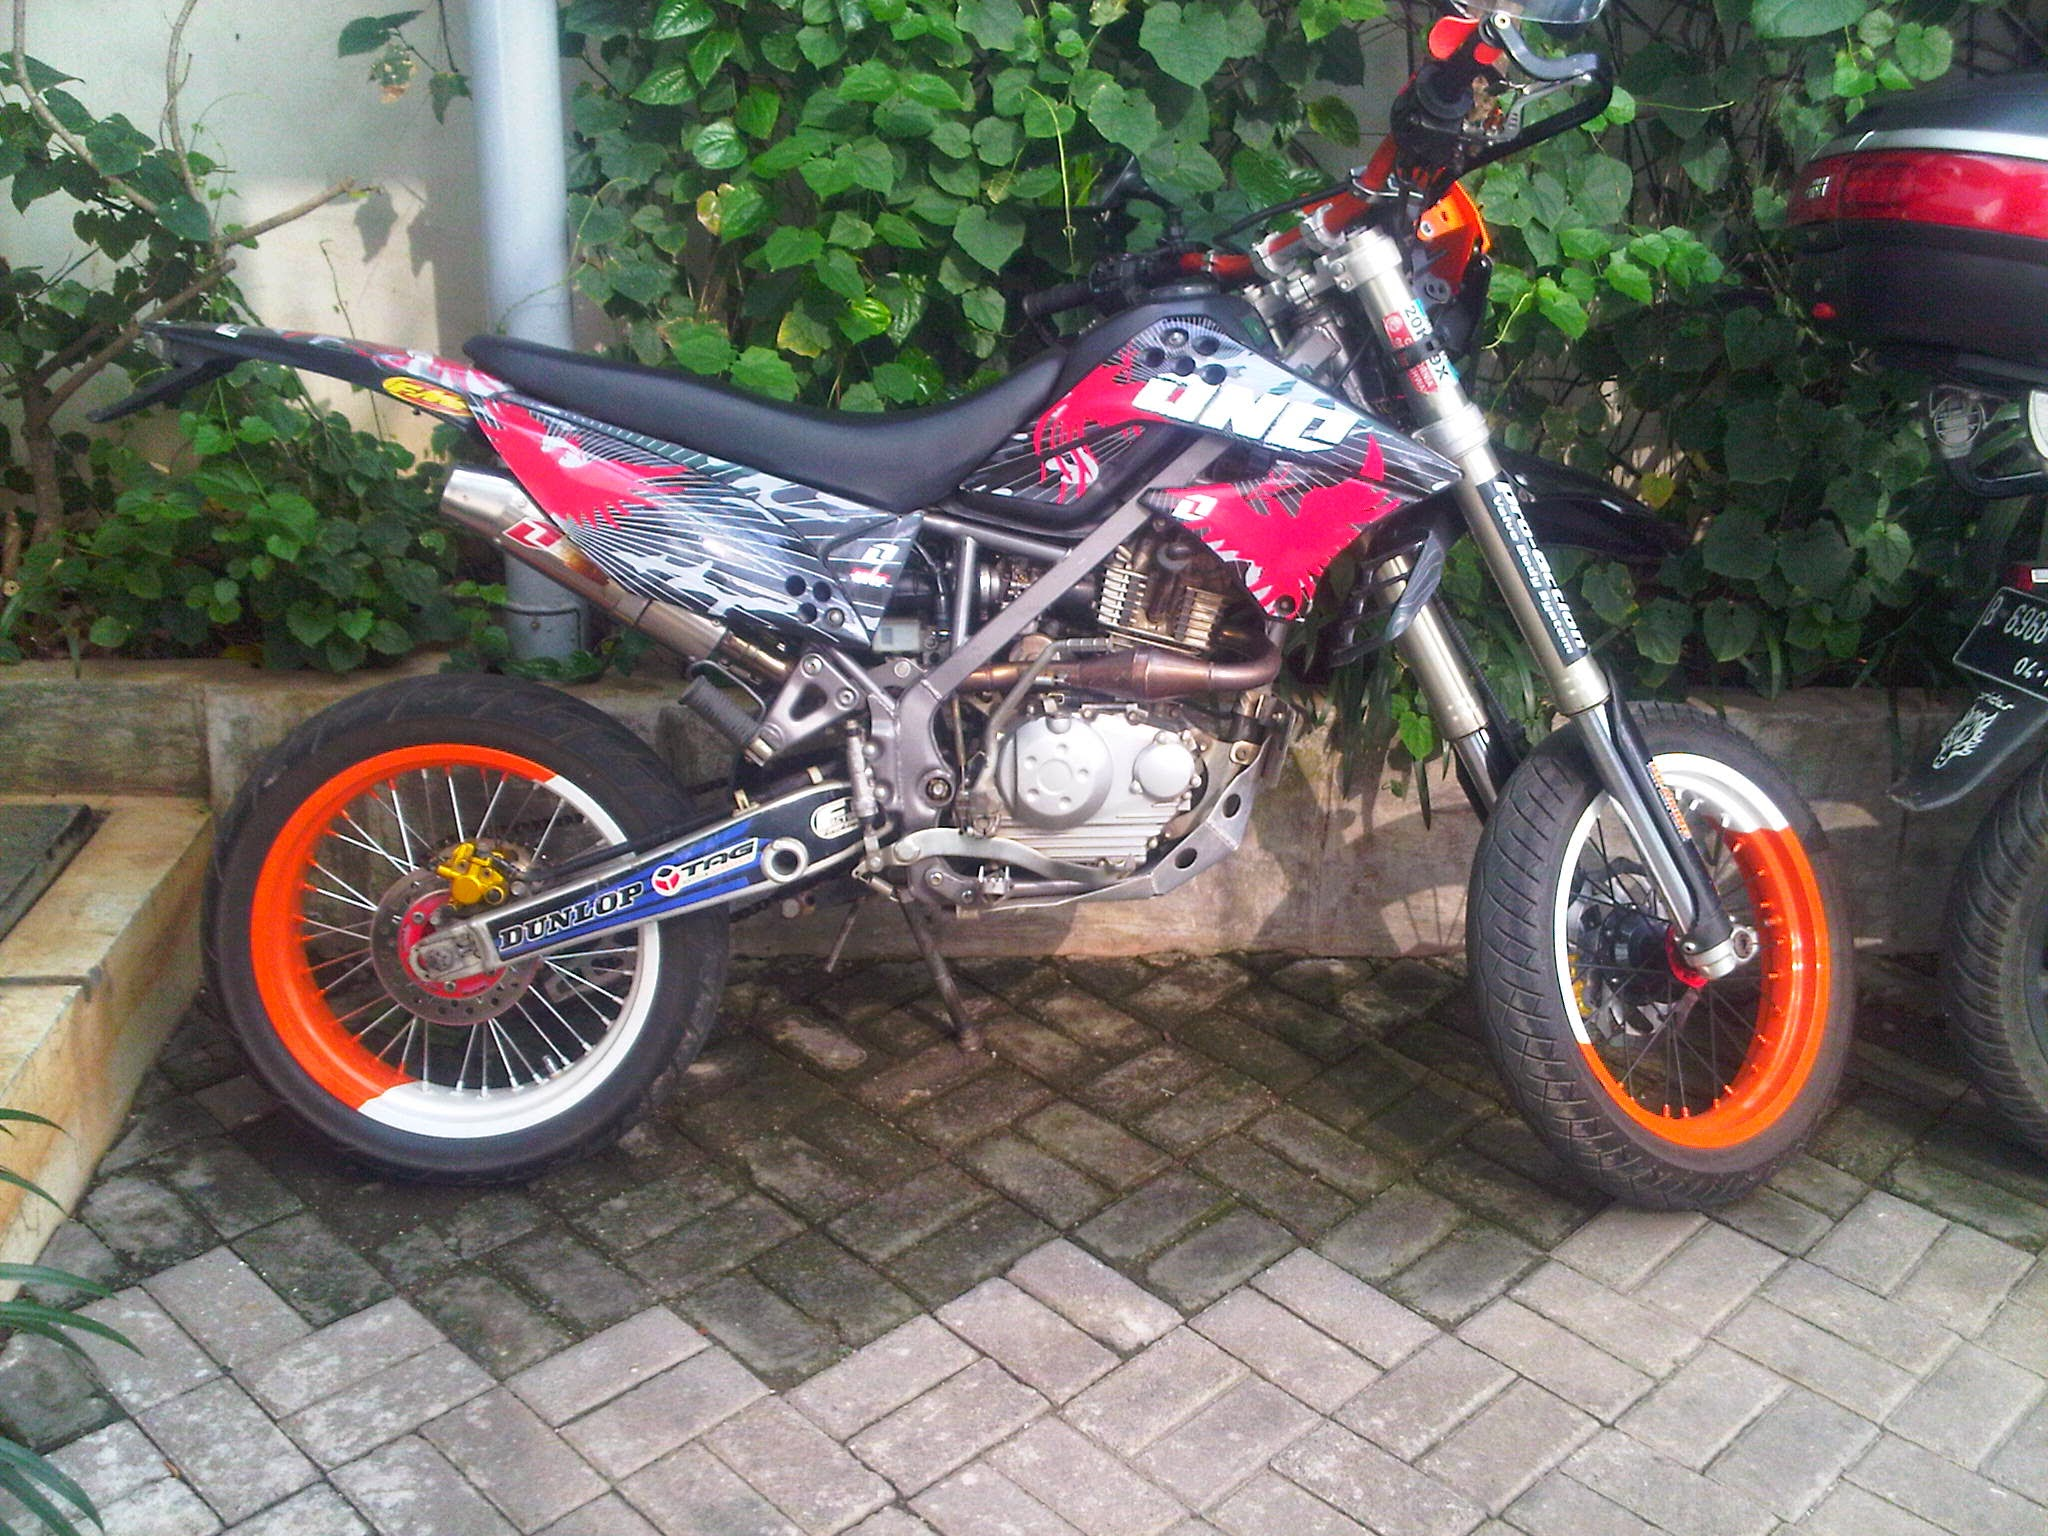 KlxDTracker150Modifikasimodifikasiklx150menjadisupermoto6940